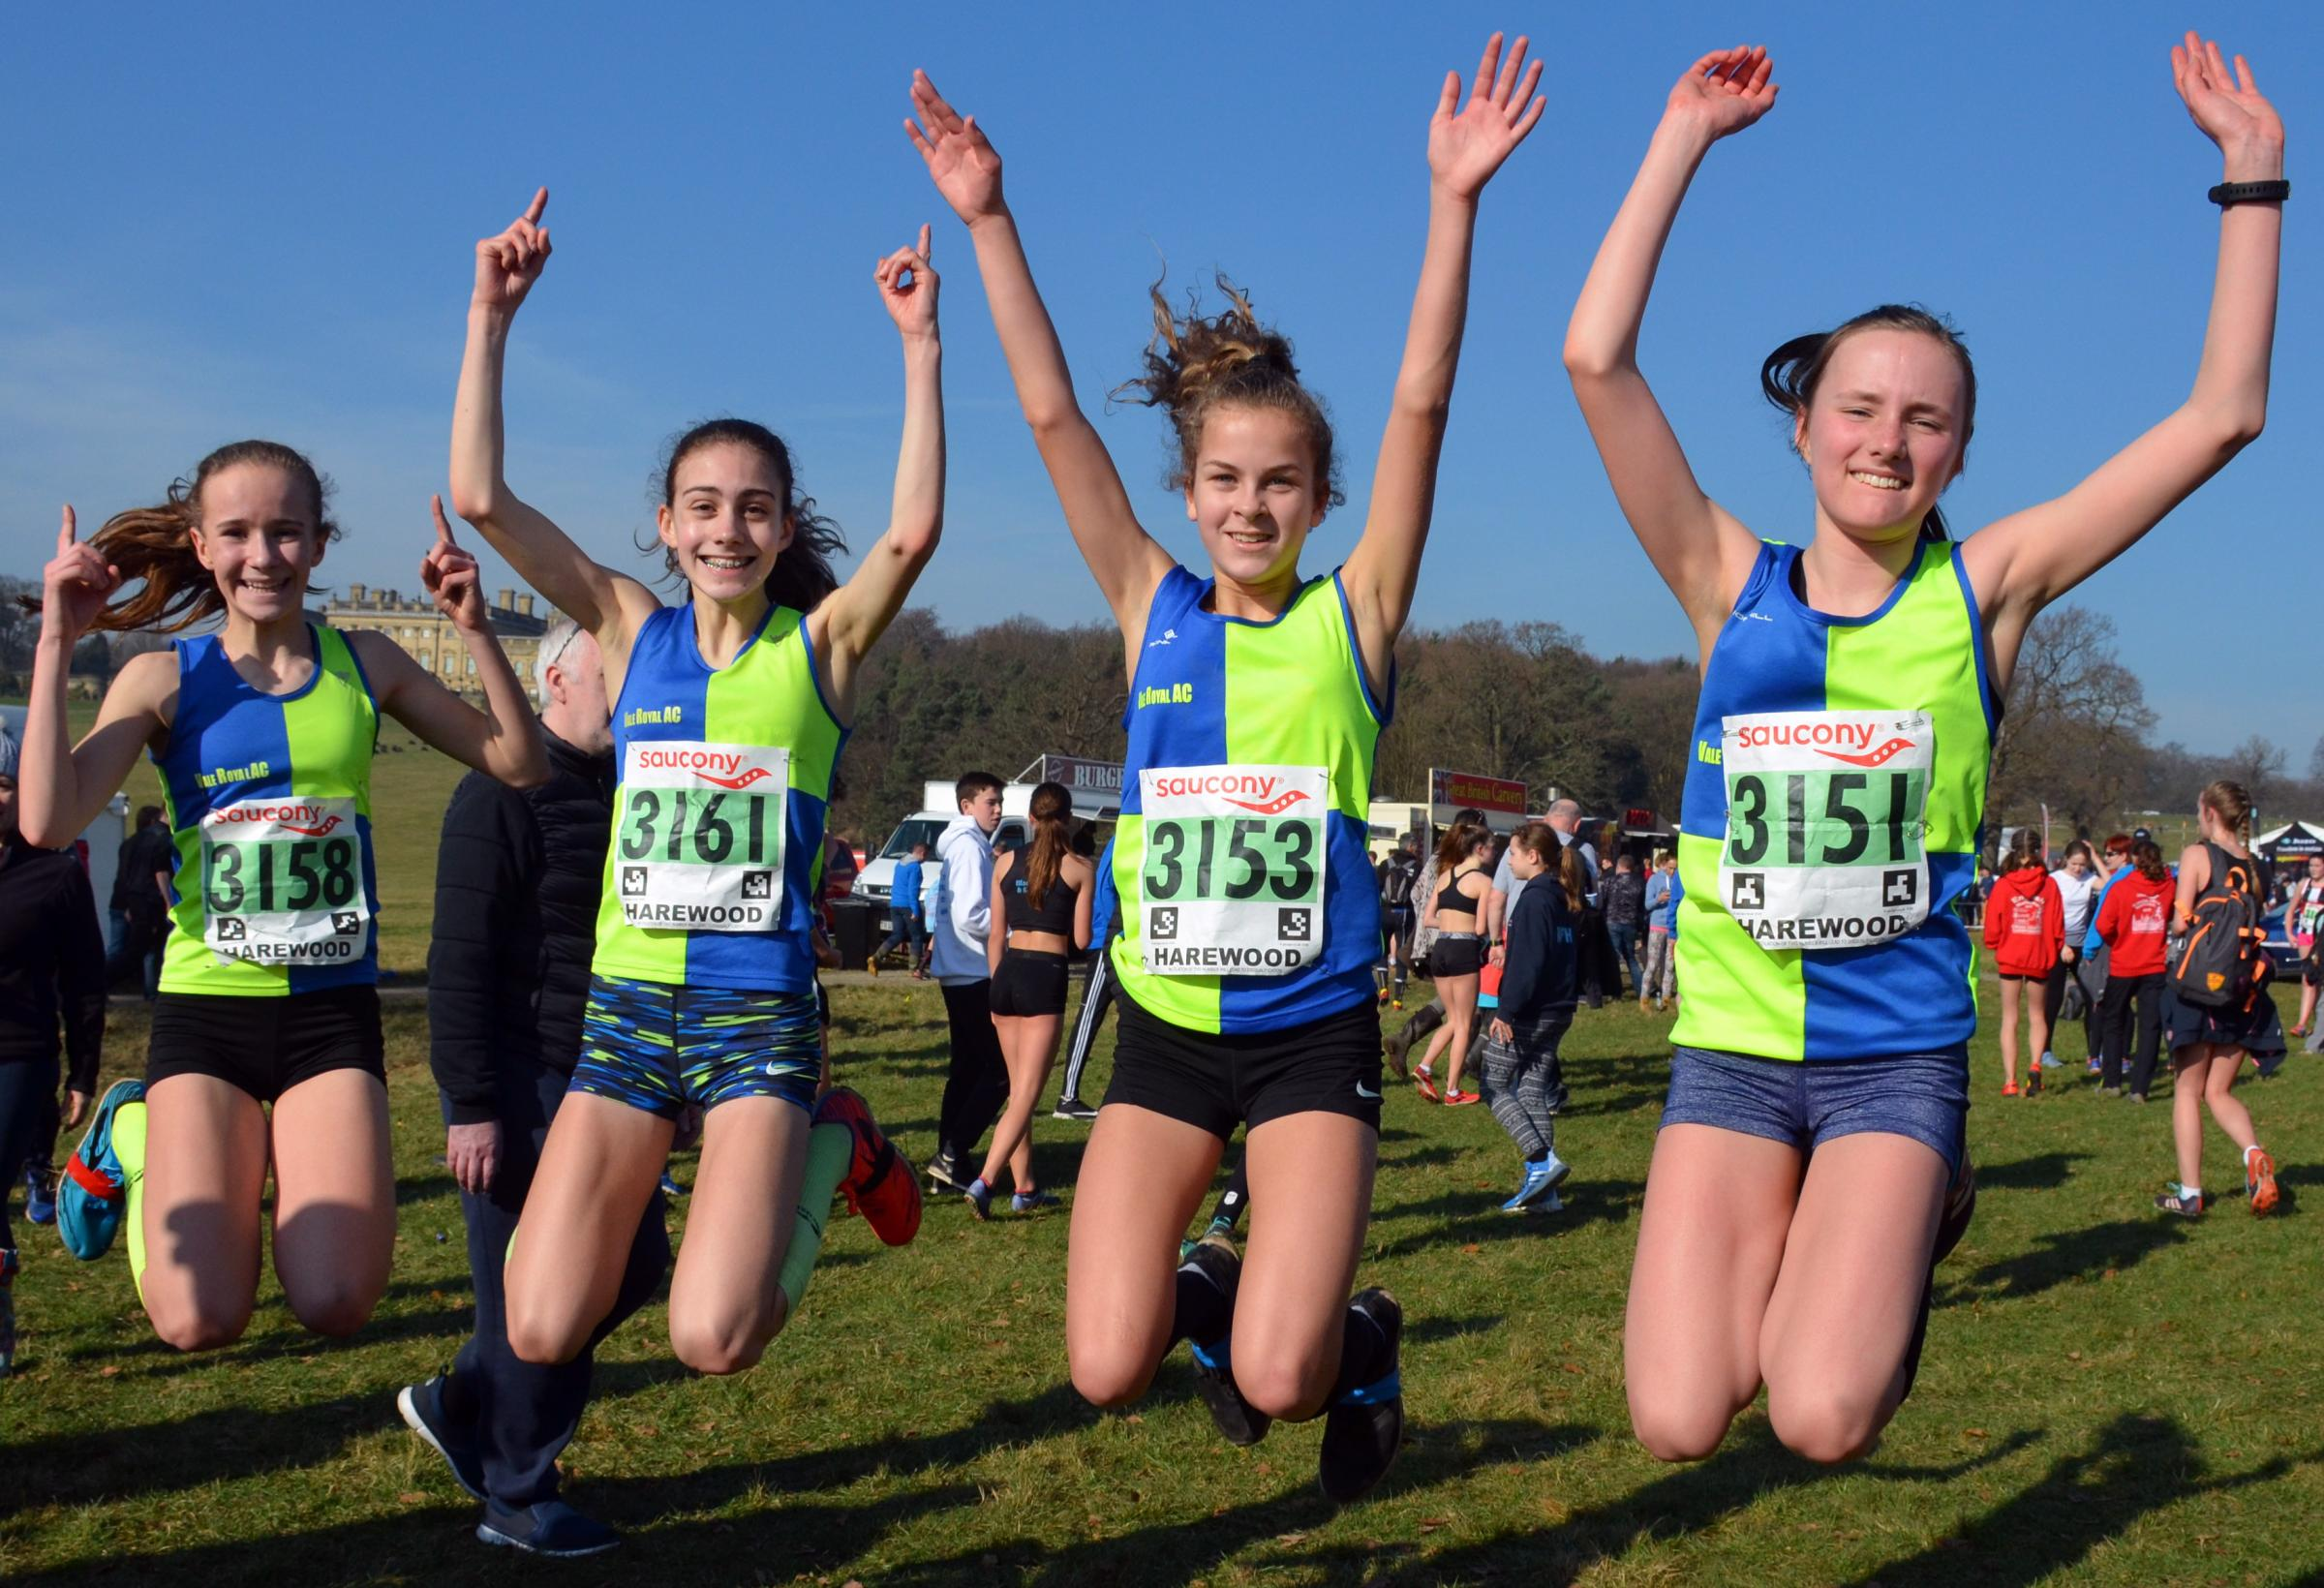 Vale Royal Athletics Club's under 15s girls' team, including Holly Weedall second from left, impressed at the English National Cross Country Championships. Picture: Dave Woodhead/woodentops.org.uk